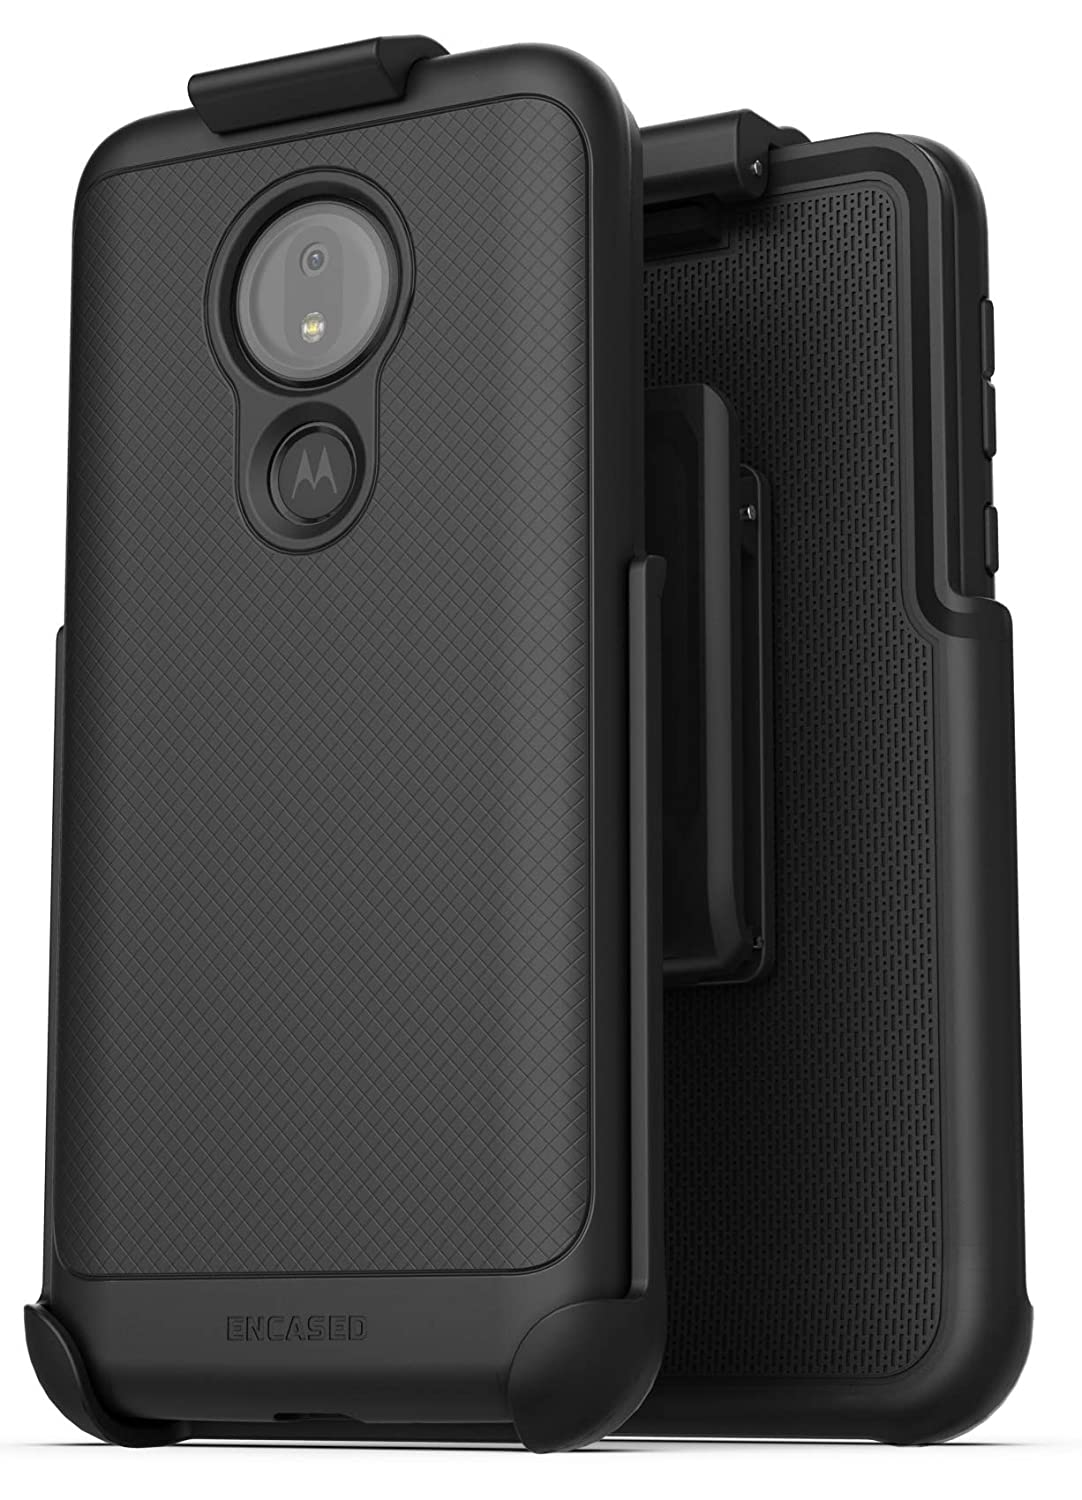 Amazon.com: Encased Moto G7 - Carcasa para Motorola G7 Power ...